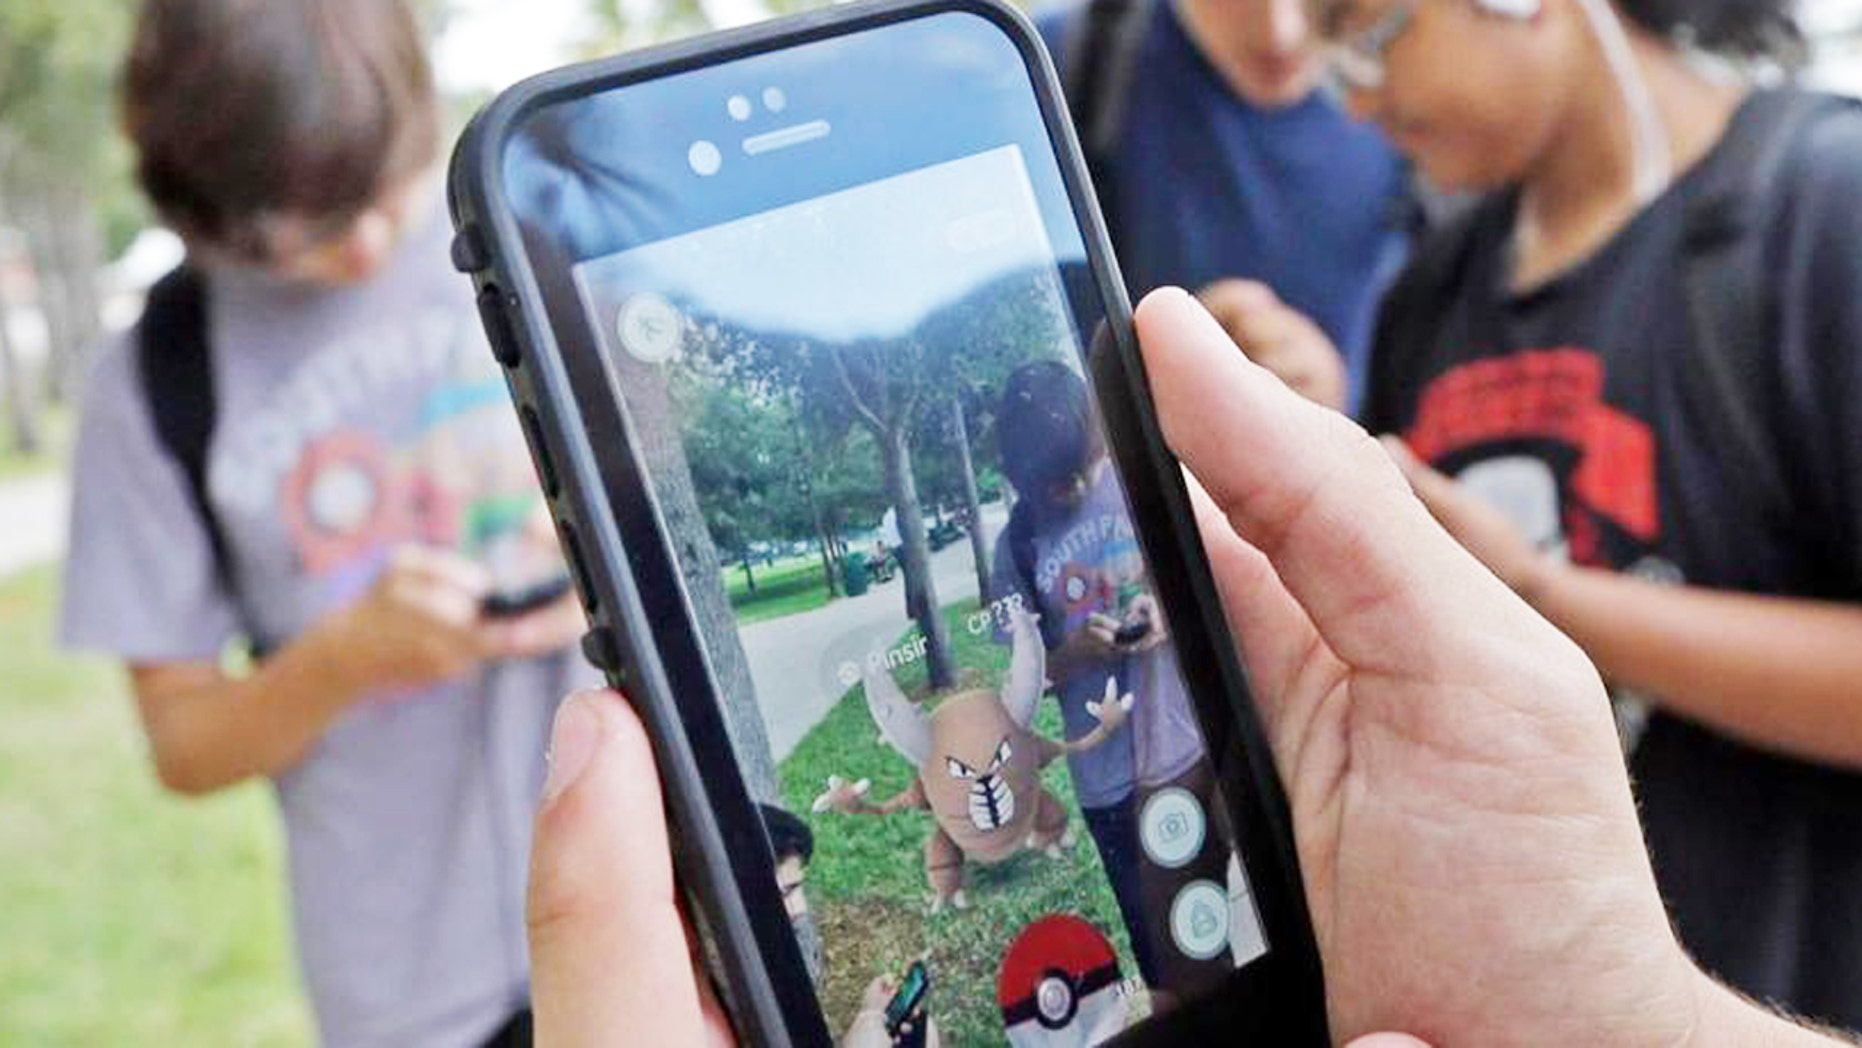 Pokemon GO players are taking over the country's public spaces. Now businesses want to capitalize on the phenomenon.